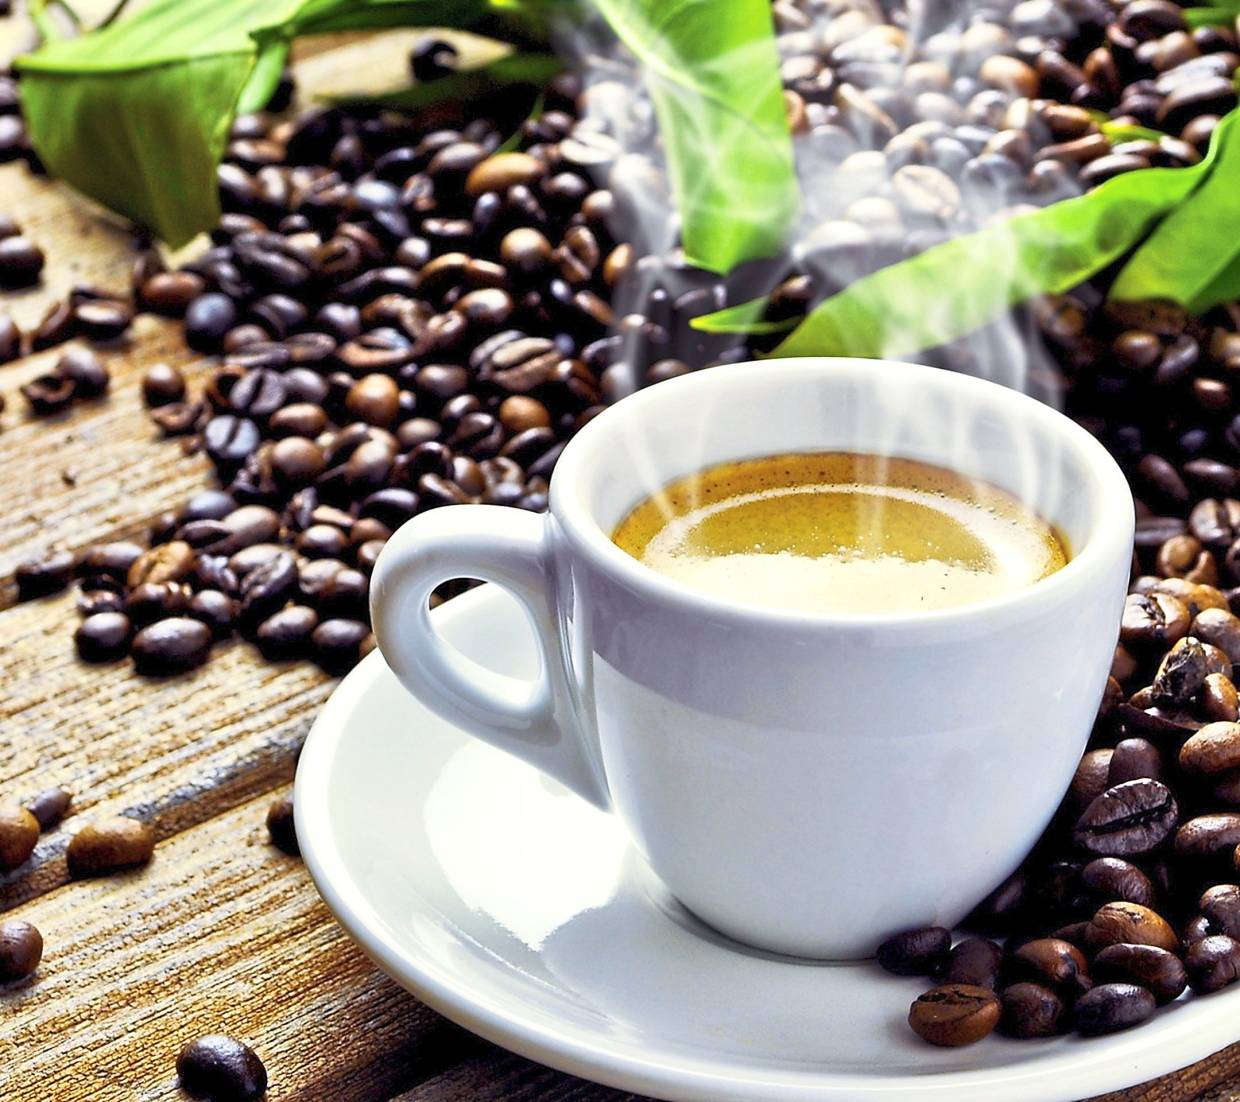 Over-drinking coffee does not constitute addiction or abuse as it does not interfere with a person's normal life patterns.